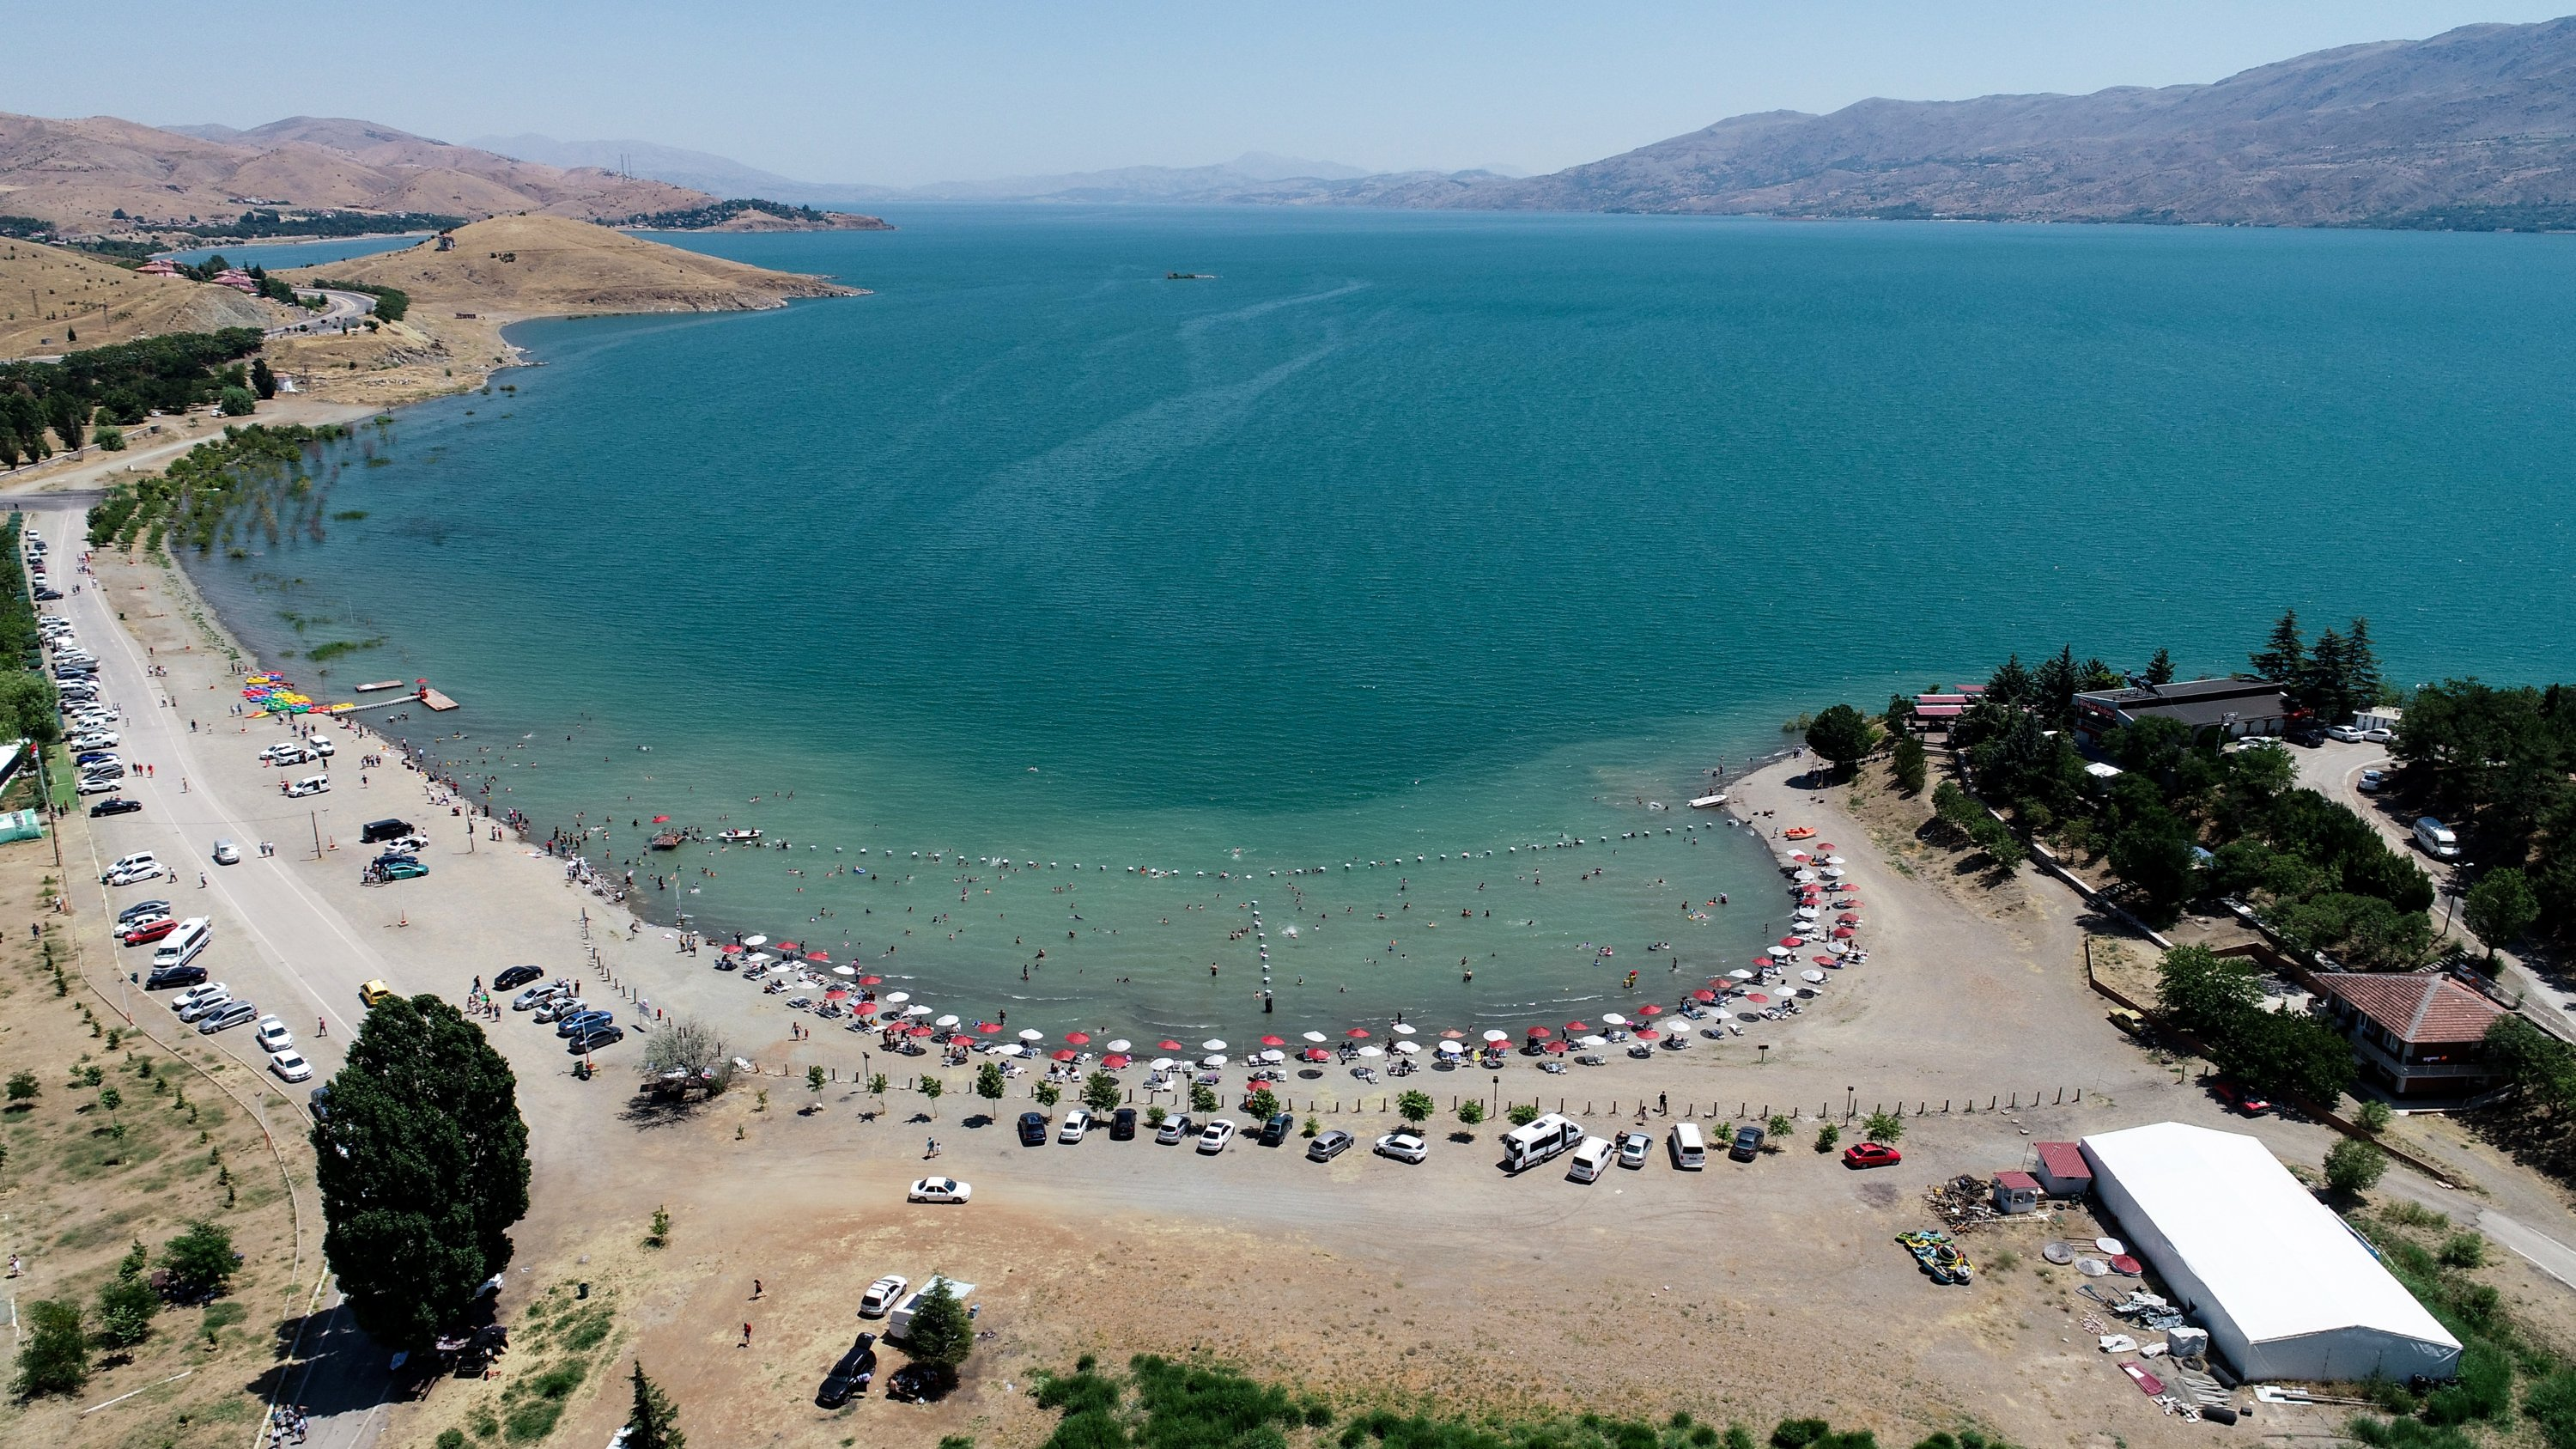 Lake Hazar has proven especially popular with vacationers from eastern and southeastern Anatolia. (AA Photo)